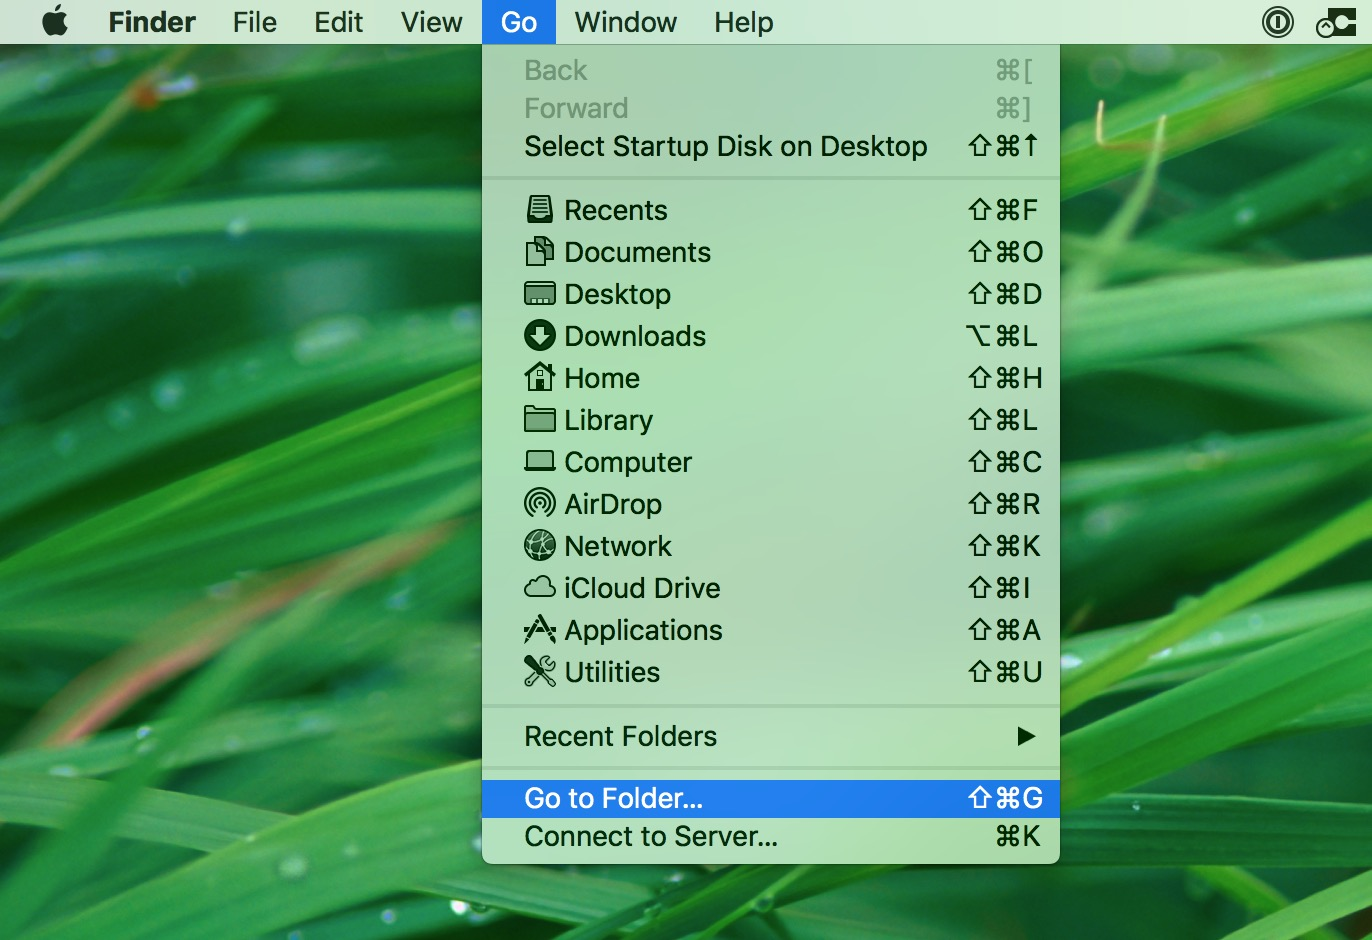 """Go"" Menu in Finder in macOS for going to specific locations on your Mac"